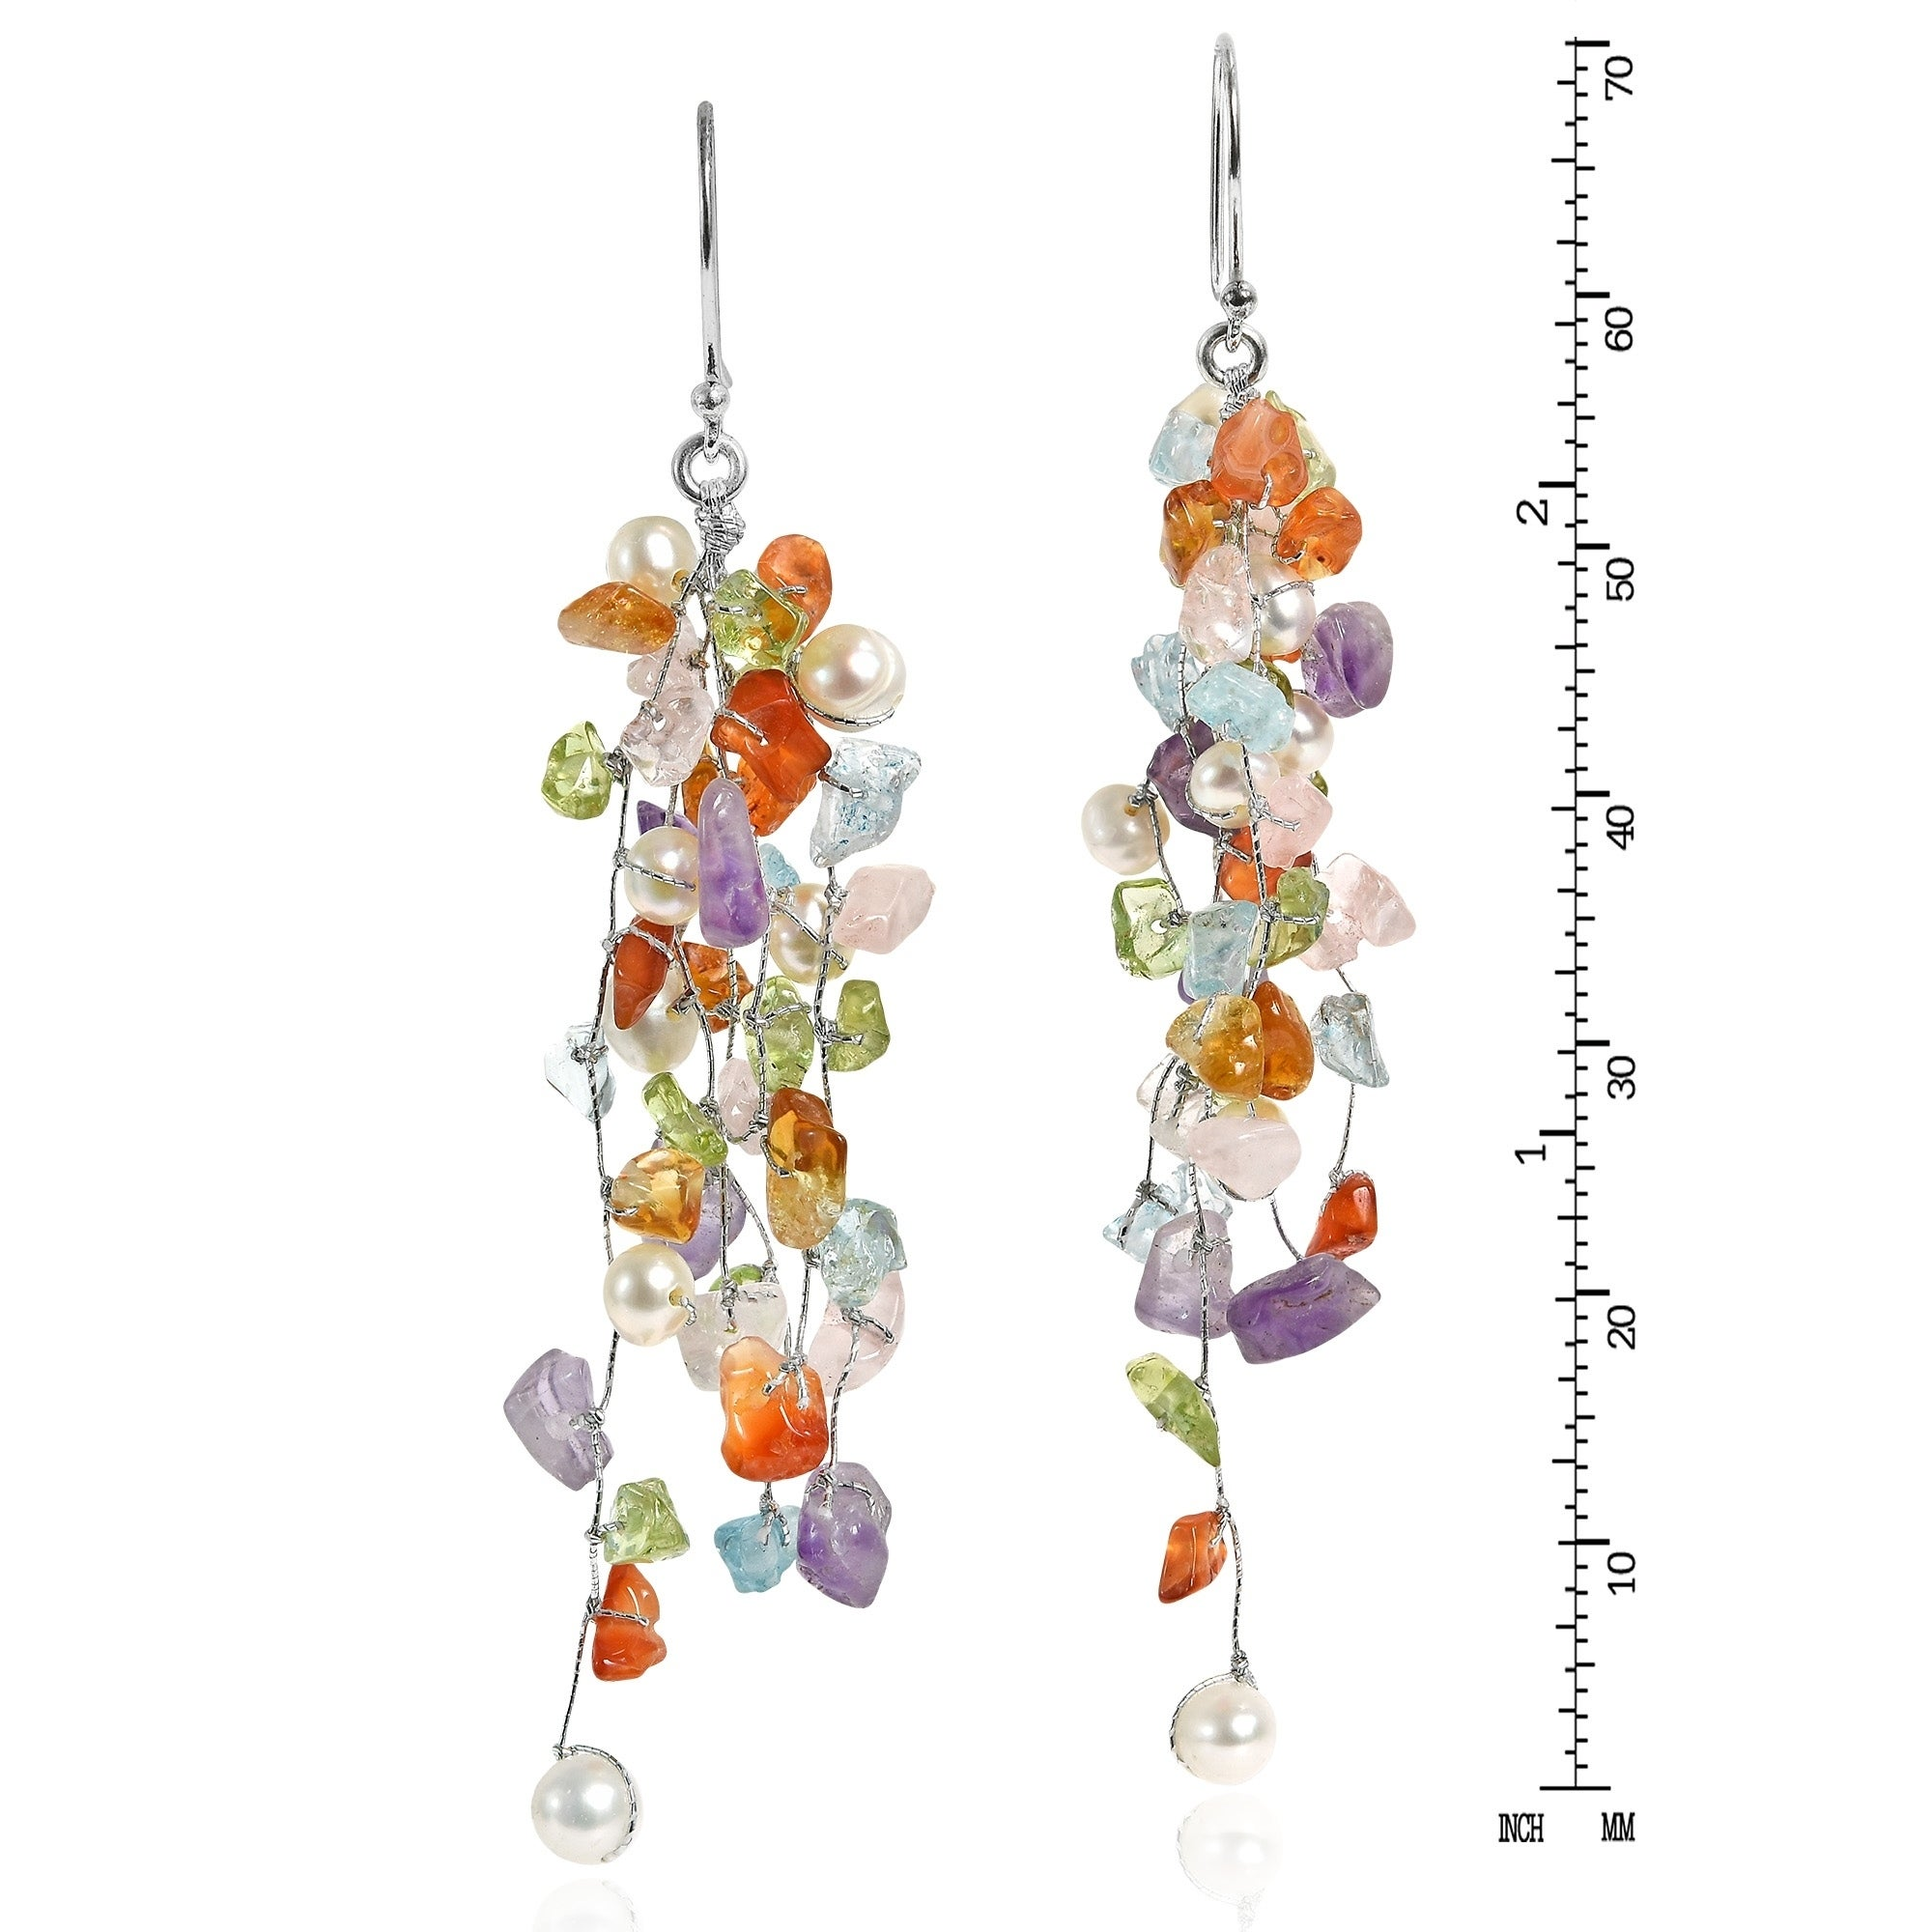 handmade maxi en earrings earring jewelry with coolt tassel colorful crystals jewellery